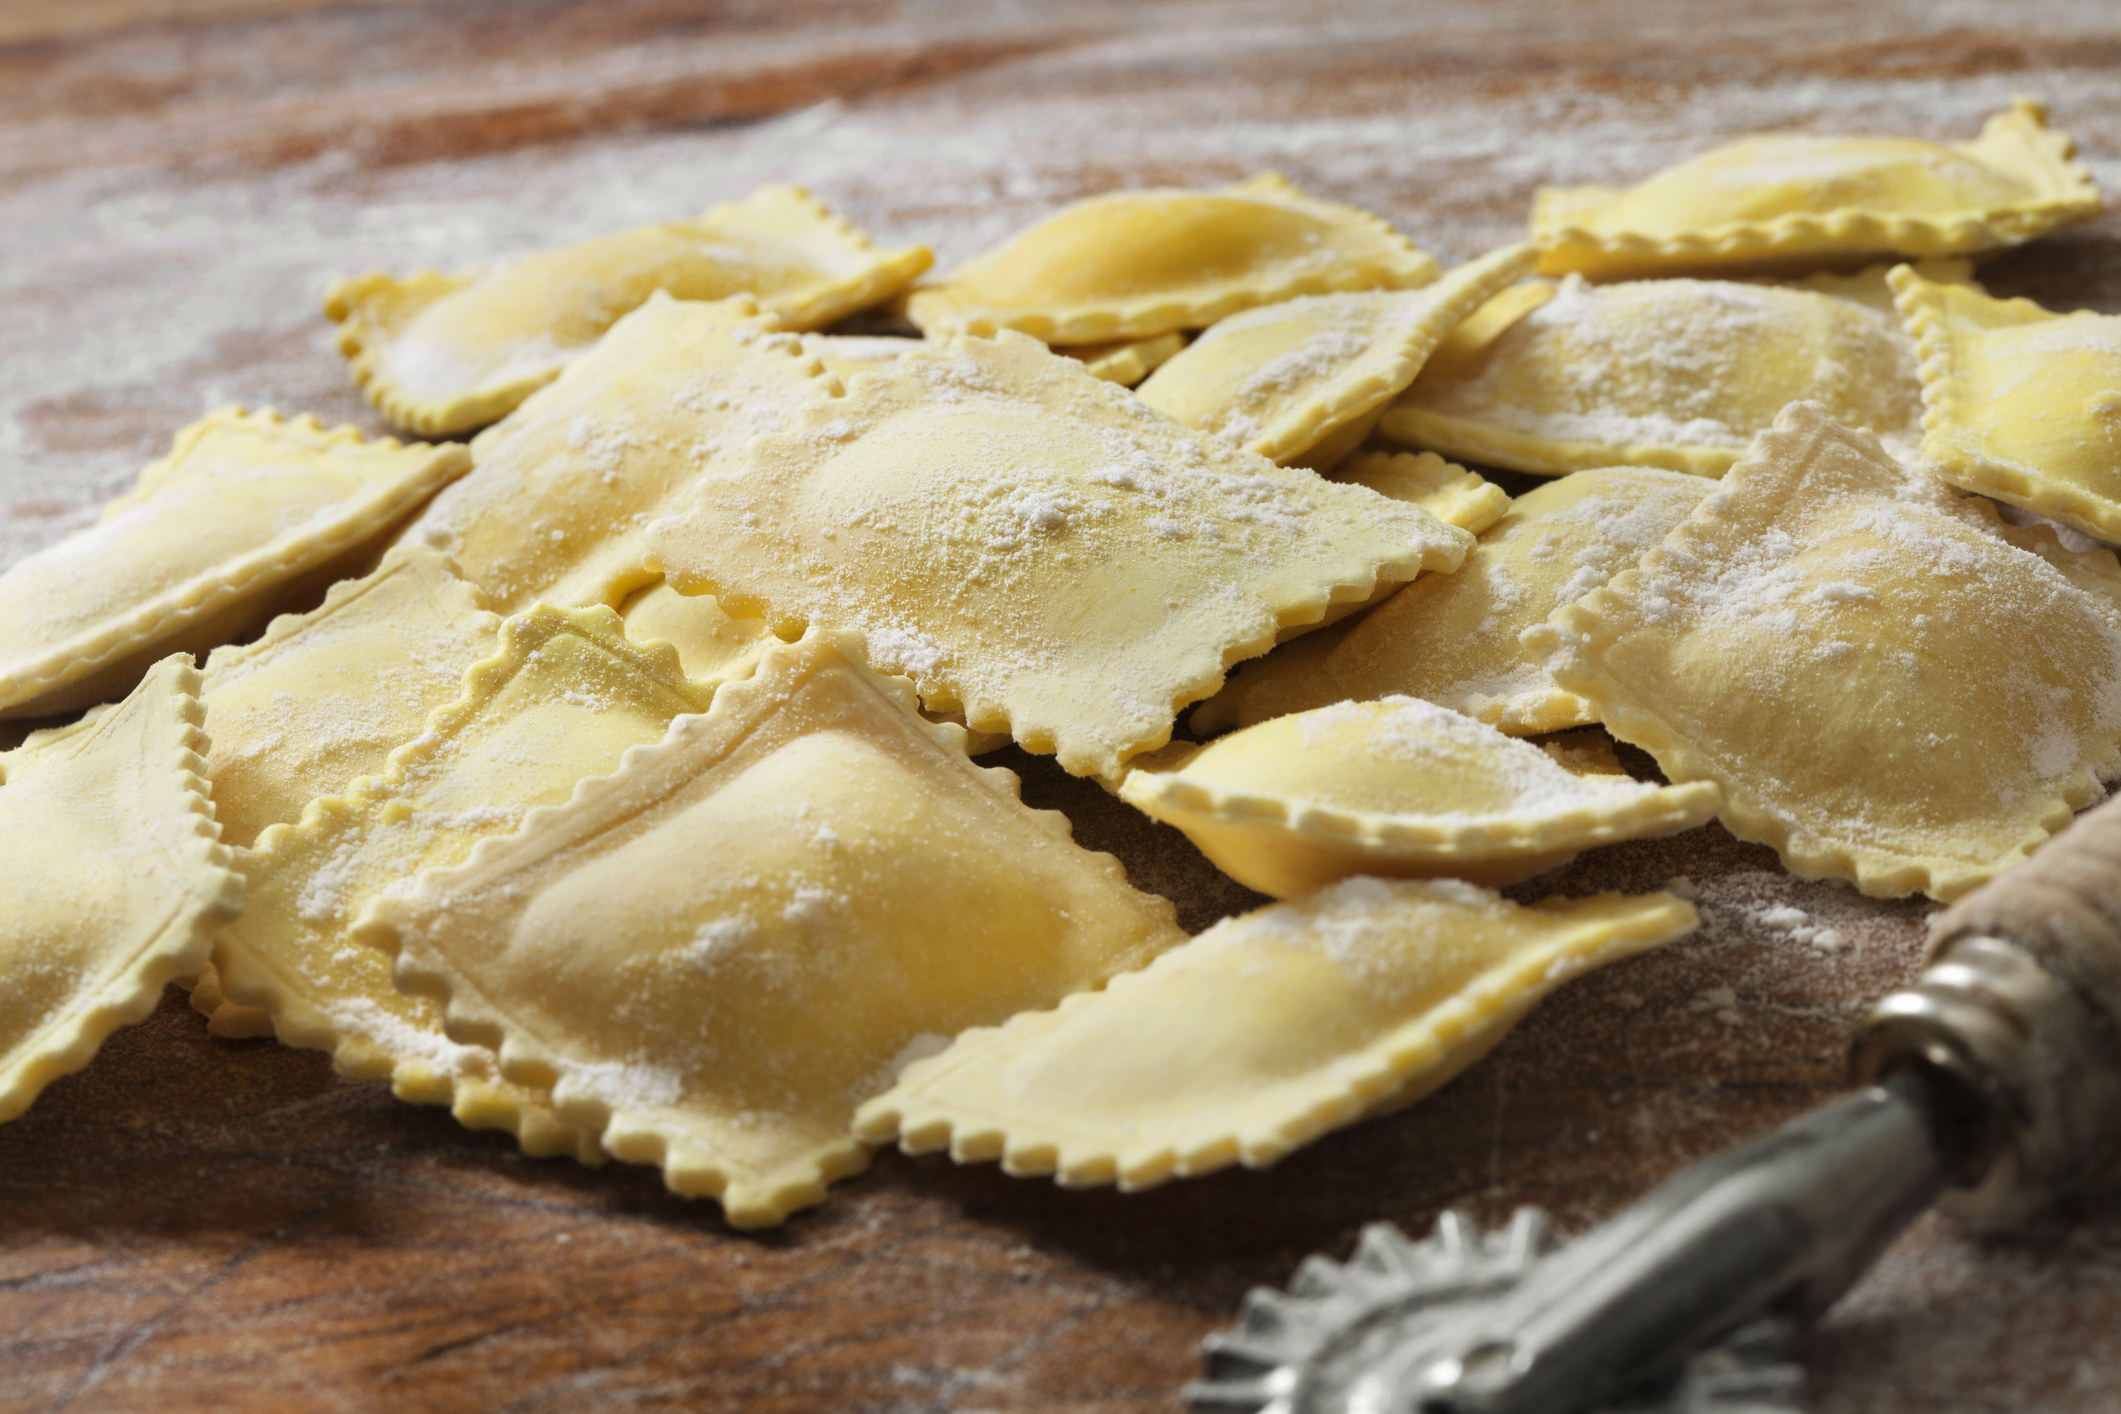 Ravioli before it's cooked